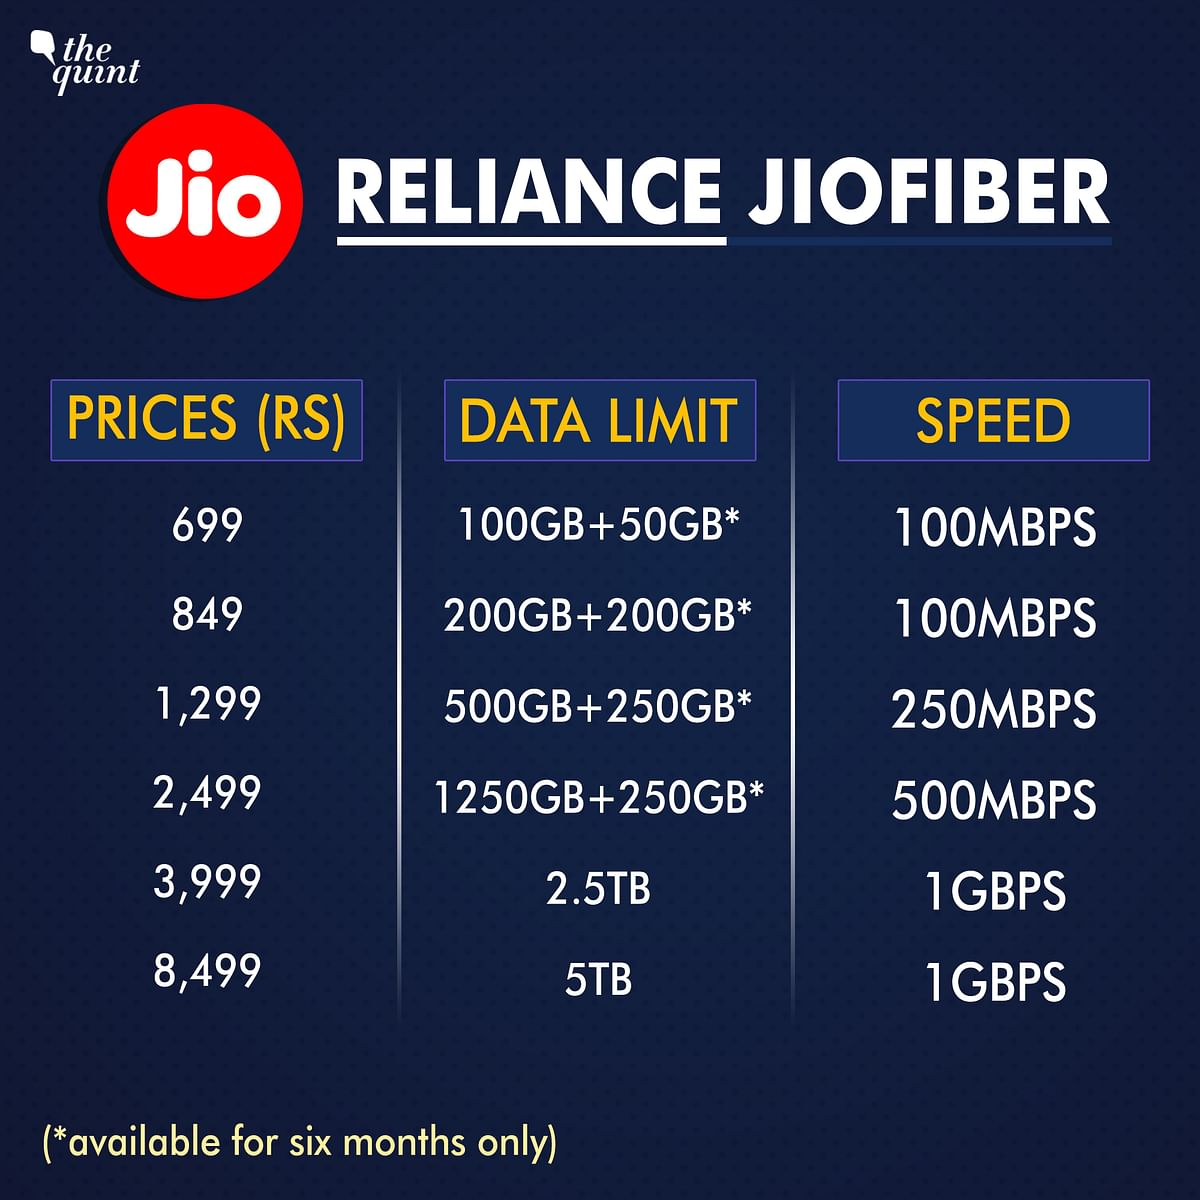 MTNL Launches 1Gbps Broadband Plan: How it Compares with JioFiber